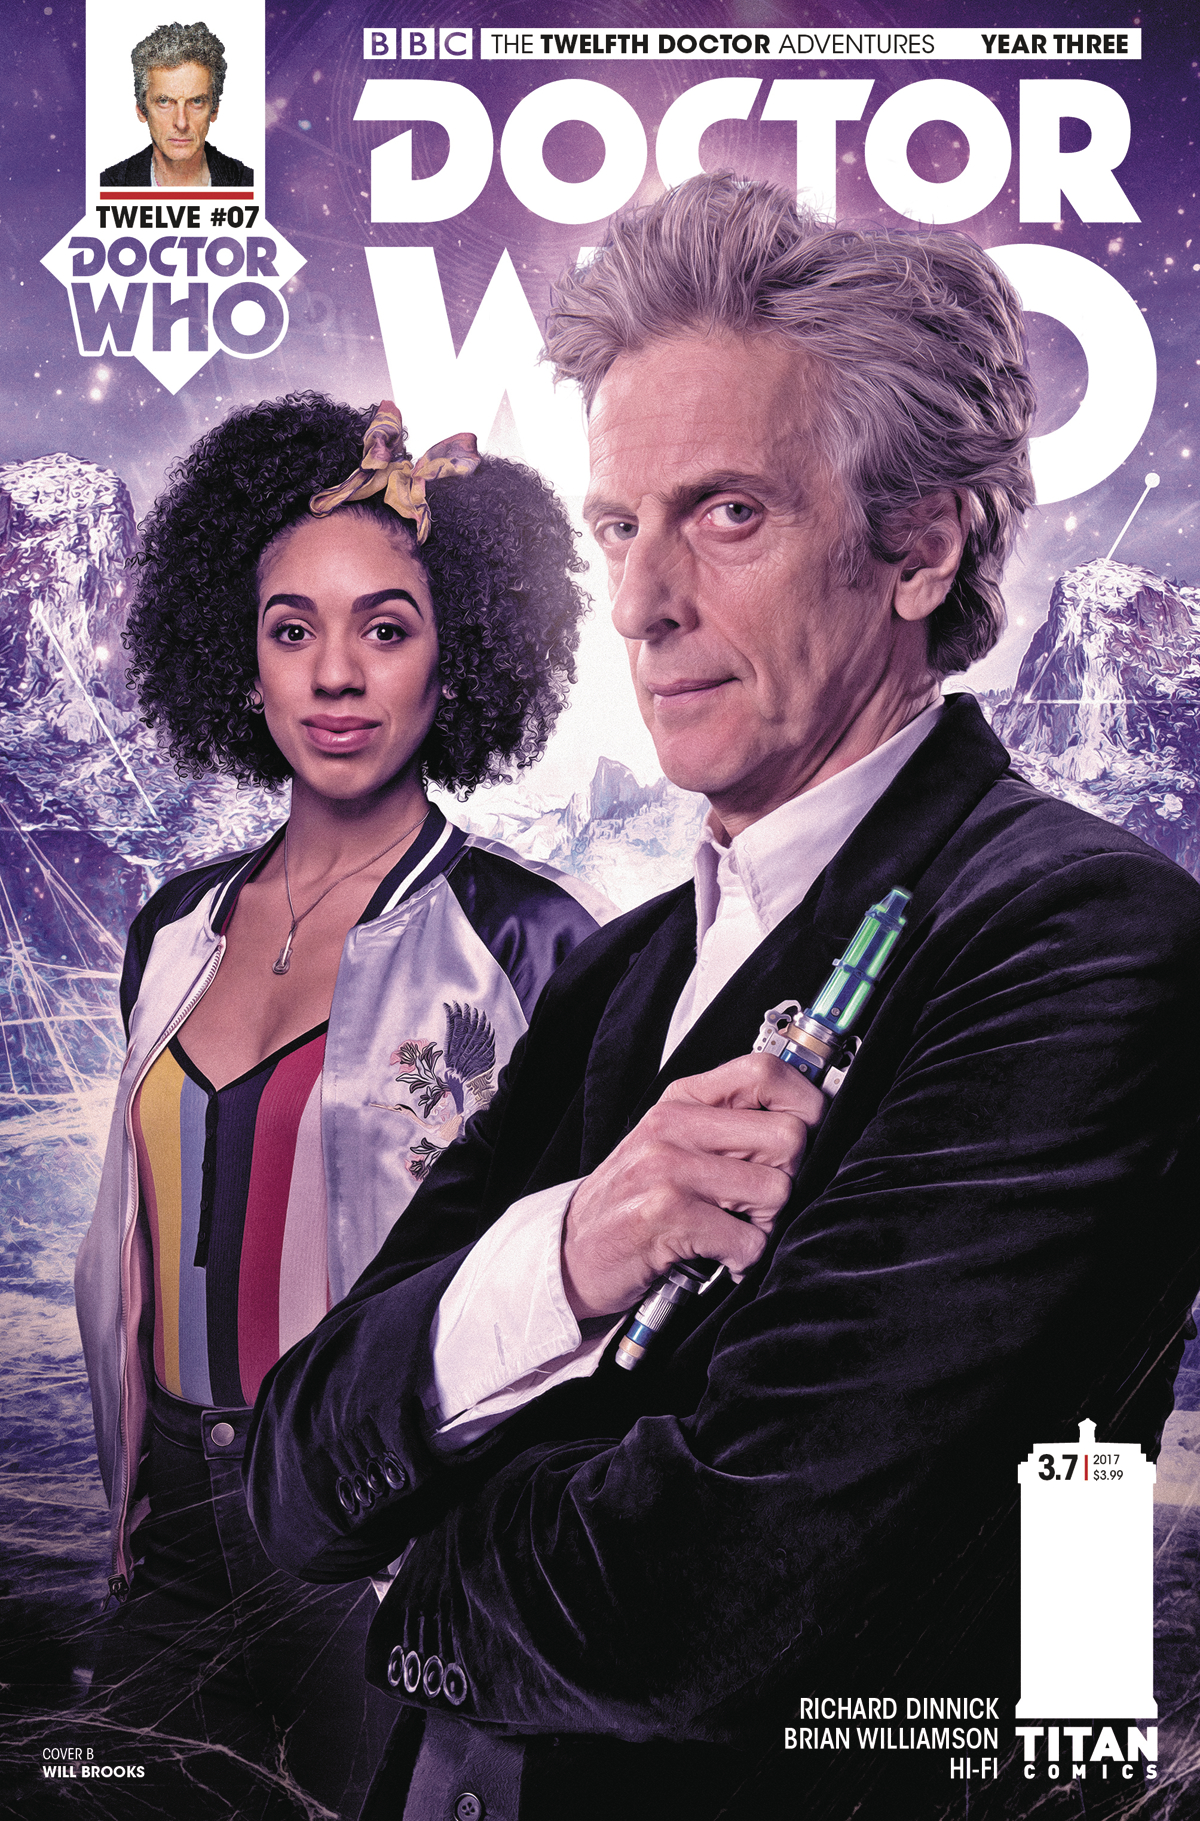 DOCTOR WHO 12TH YEAR THREE #7 CVR B BROOKS